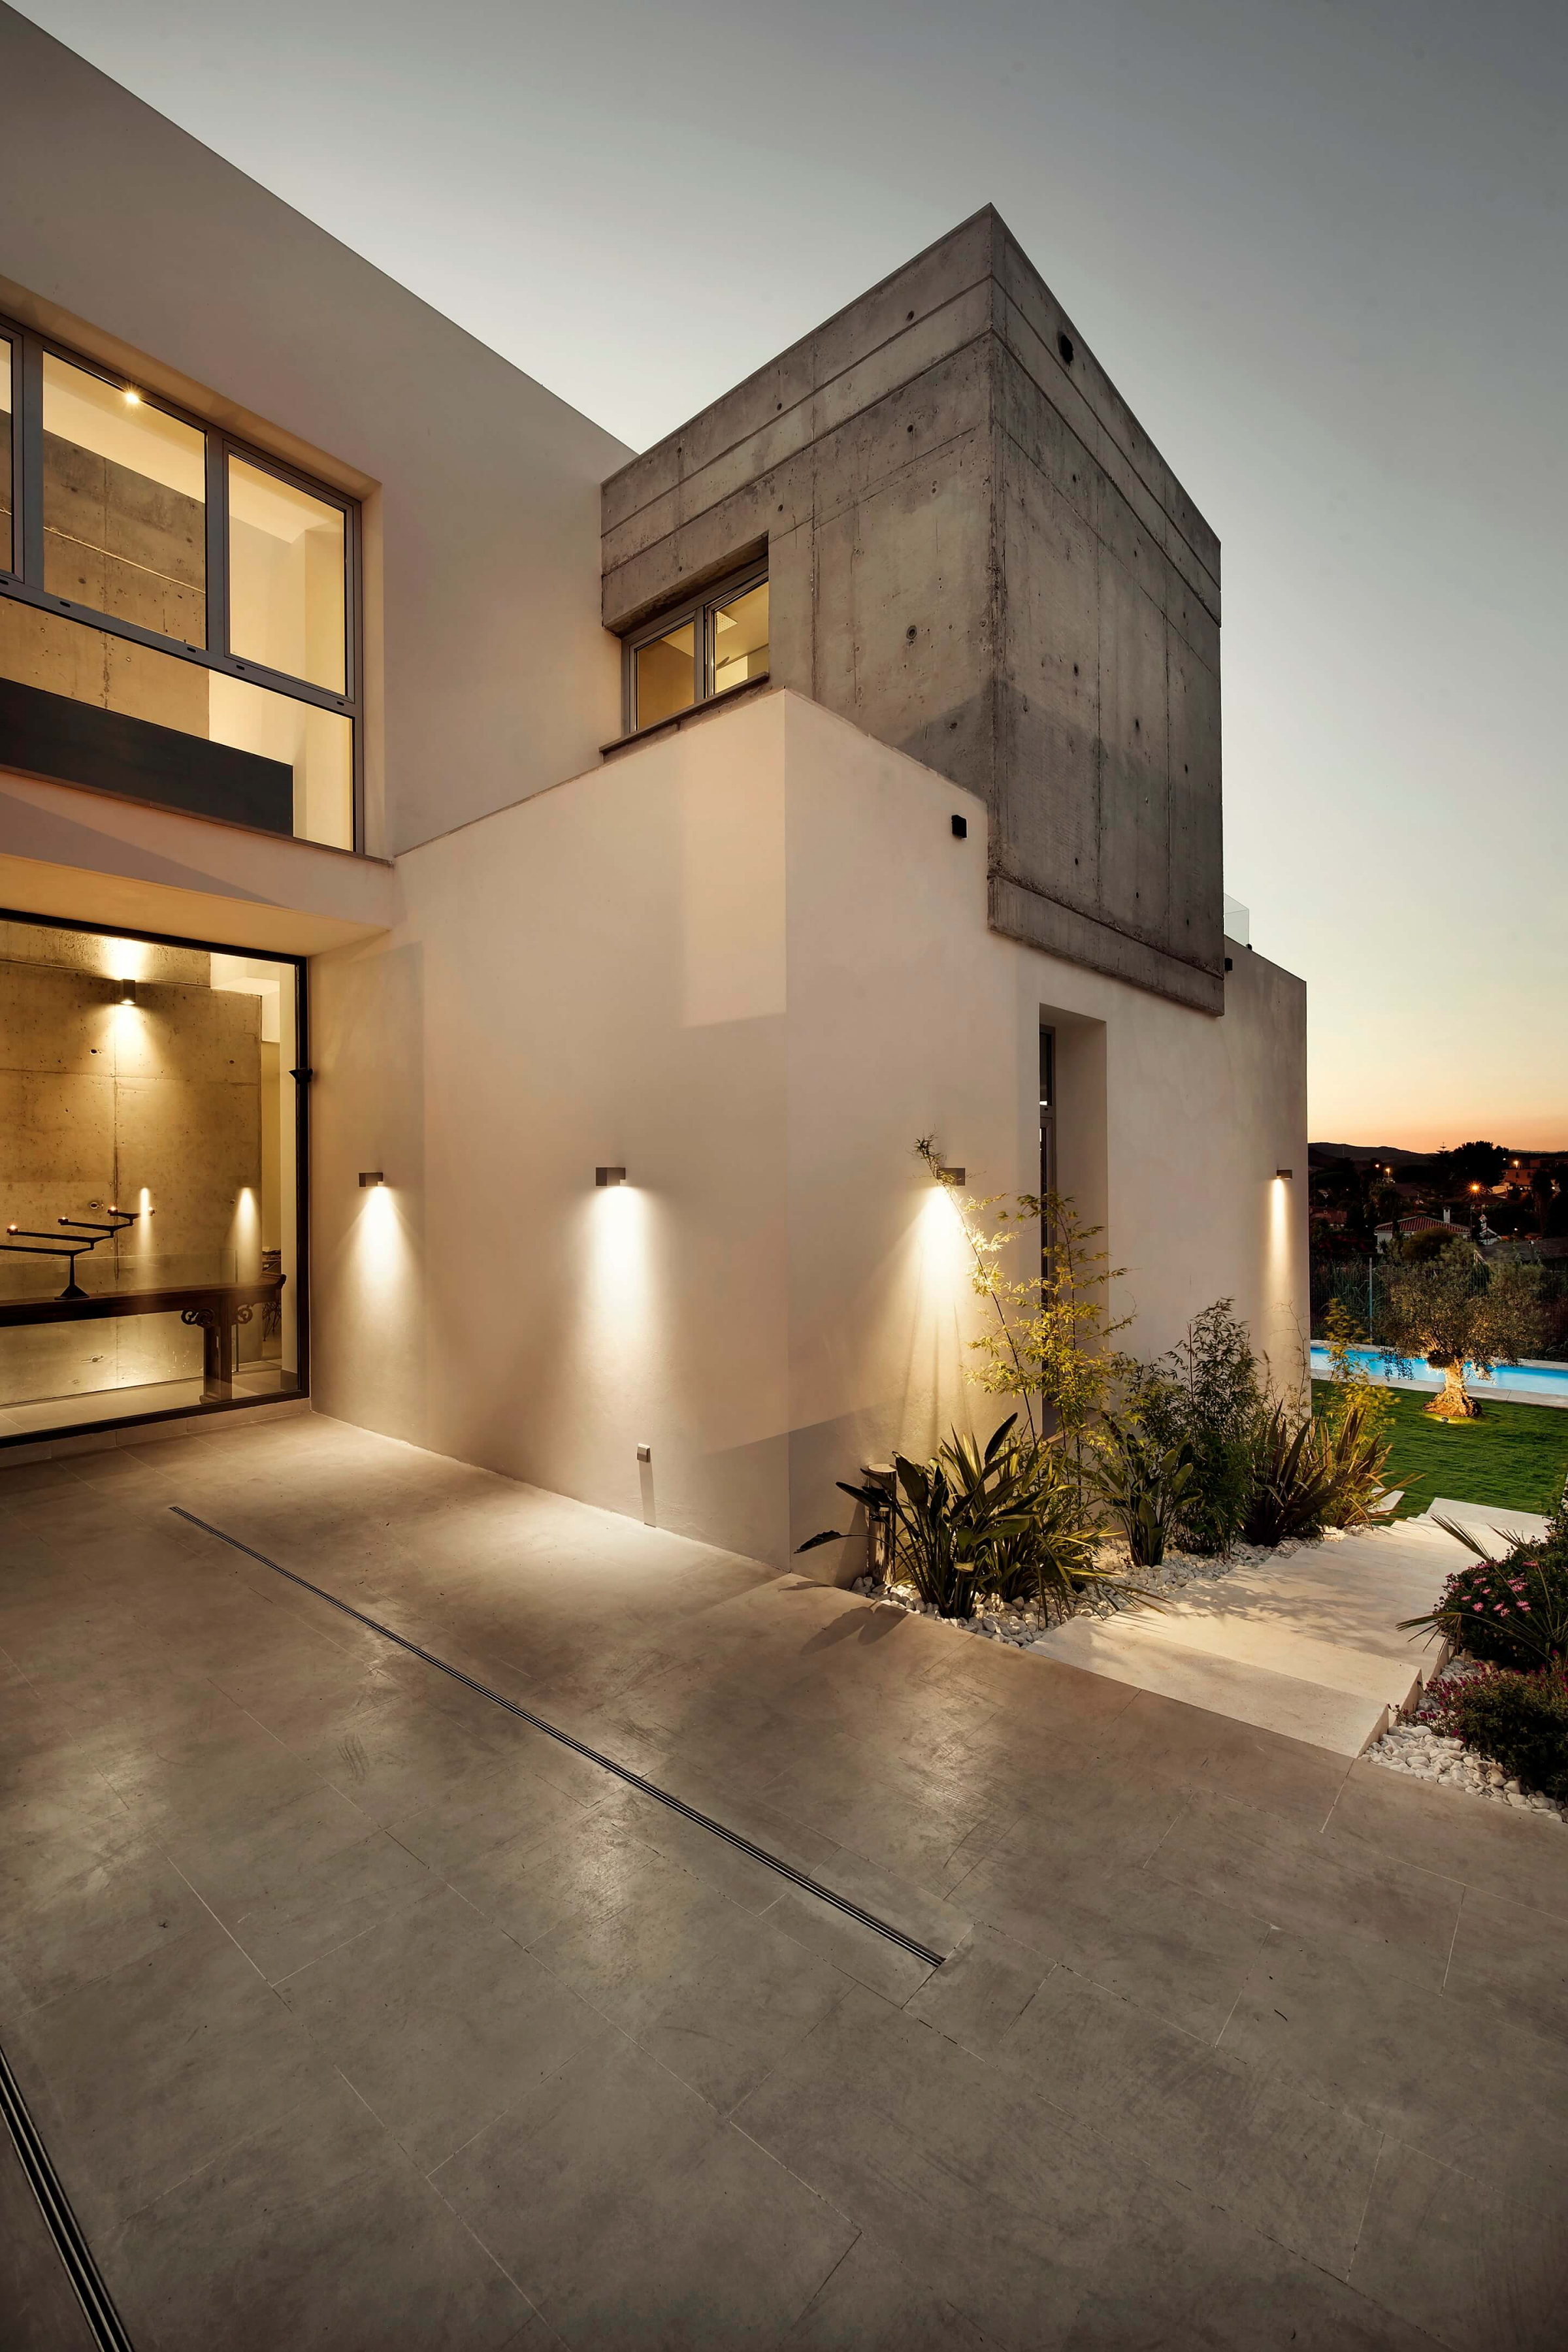 Two Storey Casa Manduka House On The South Of Spain Upon